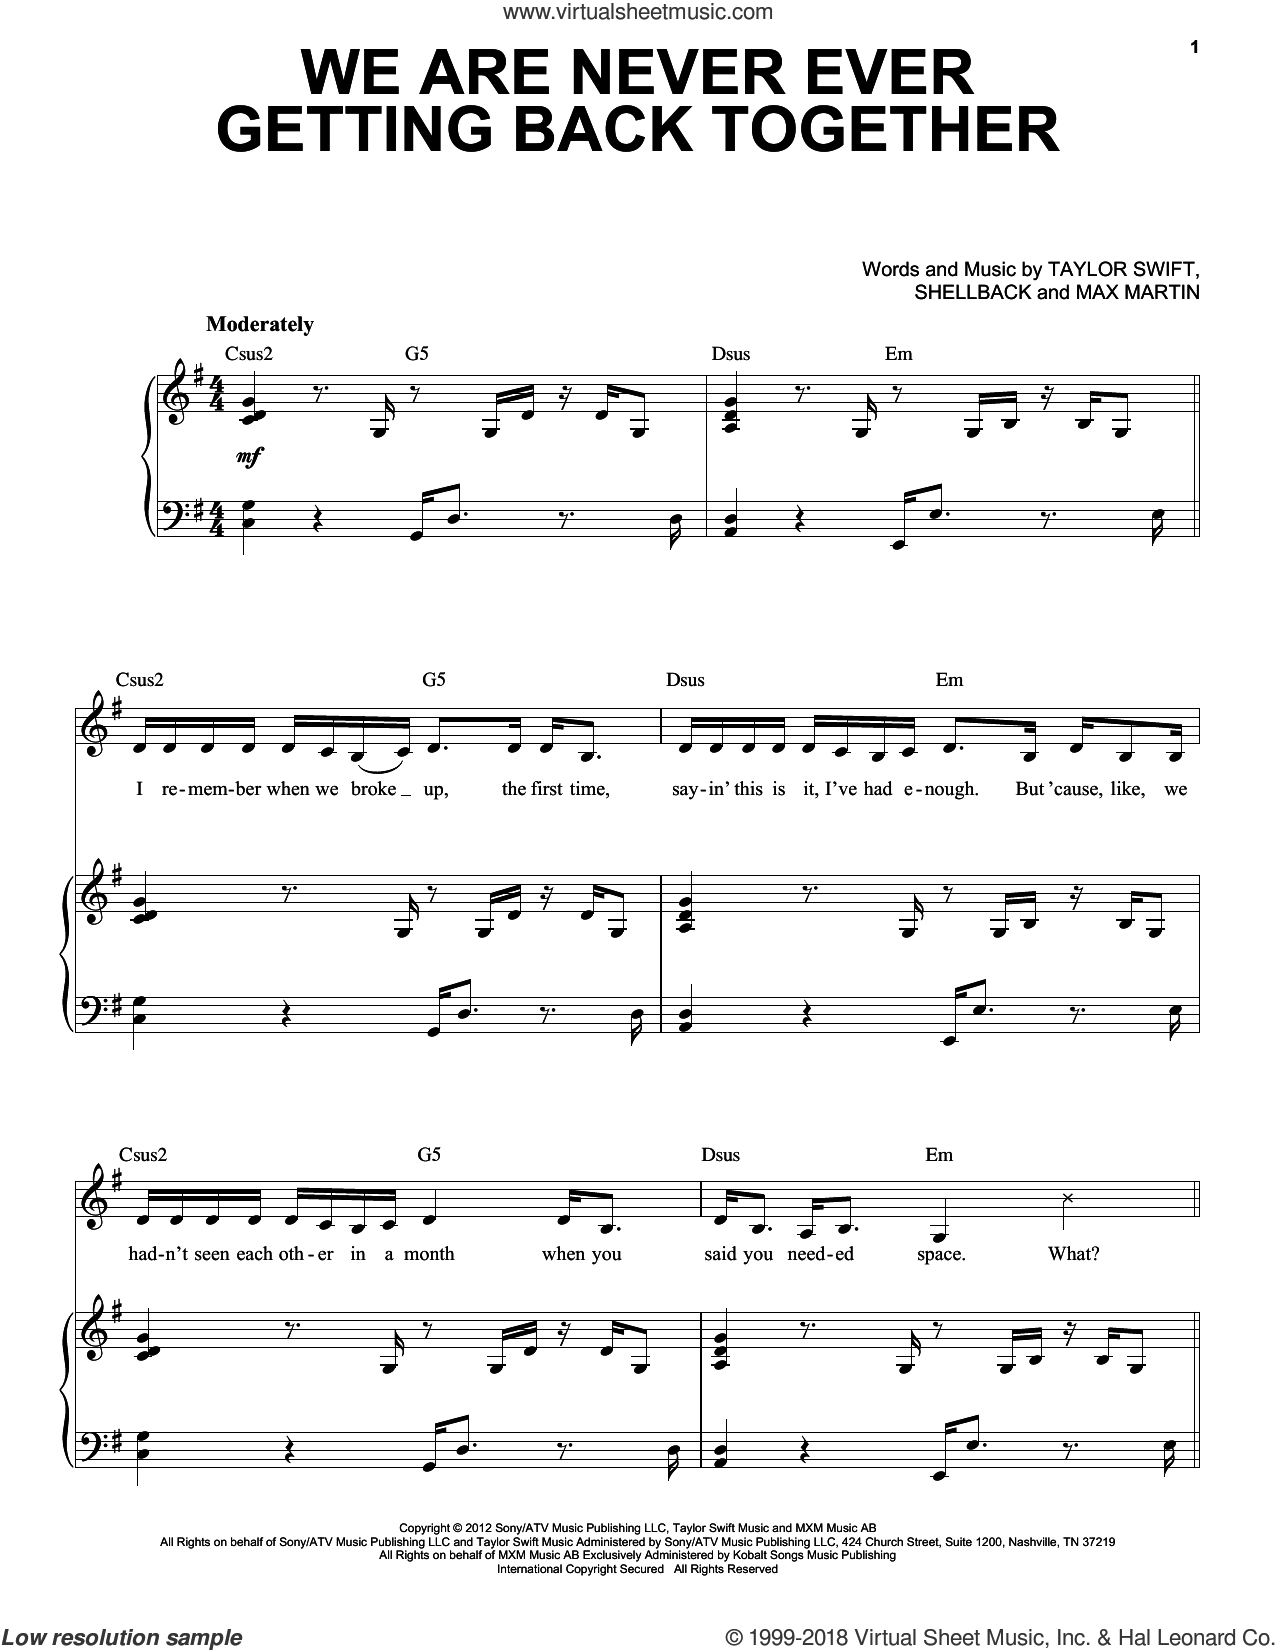 We Are Never Ever Getting Back Together sheet music for voice and piano by Taylor Swift, Max Martin and Shellback, intermediate skill level